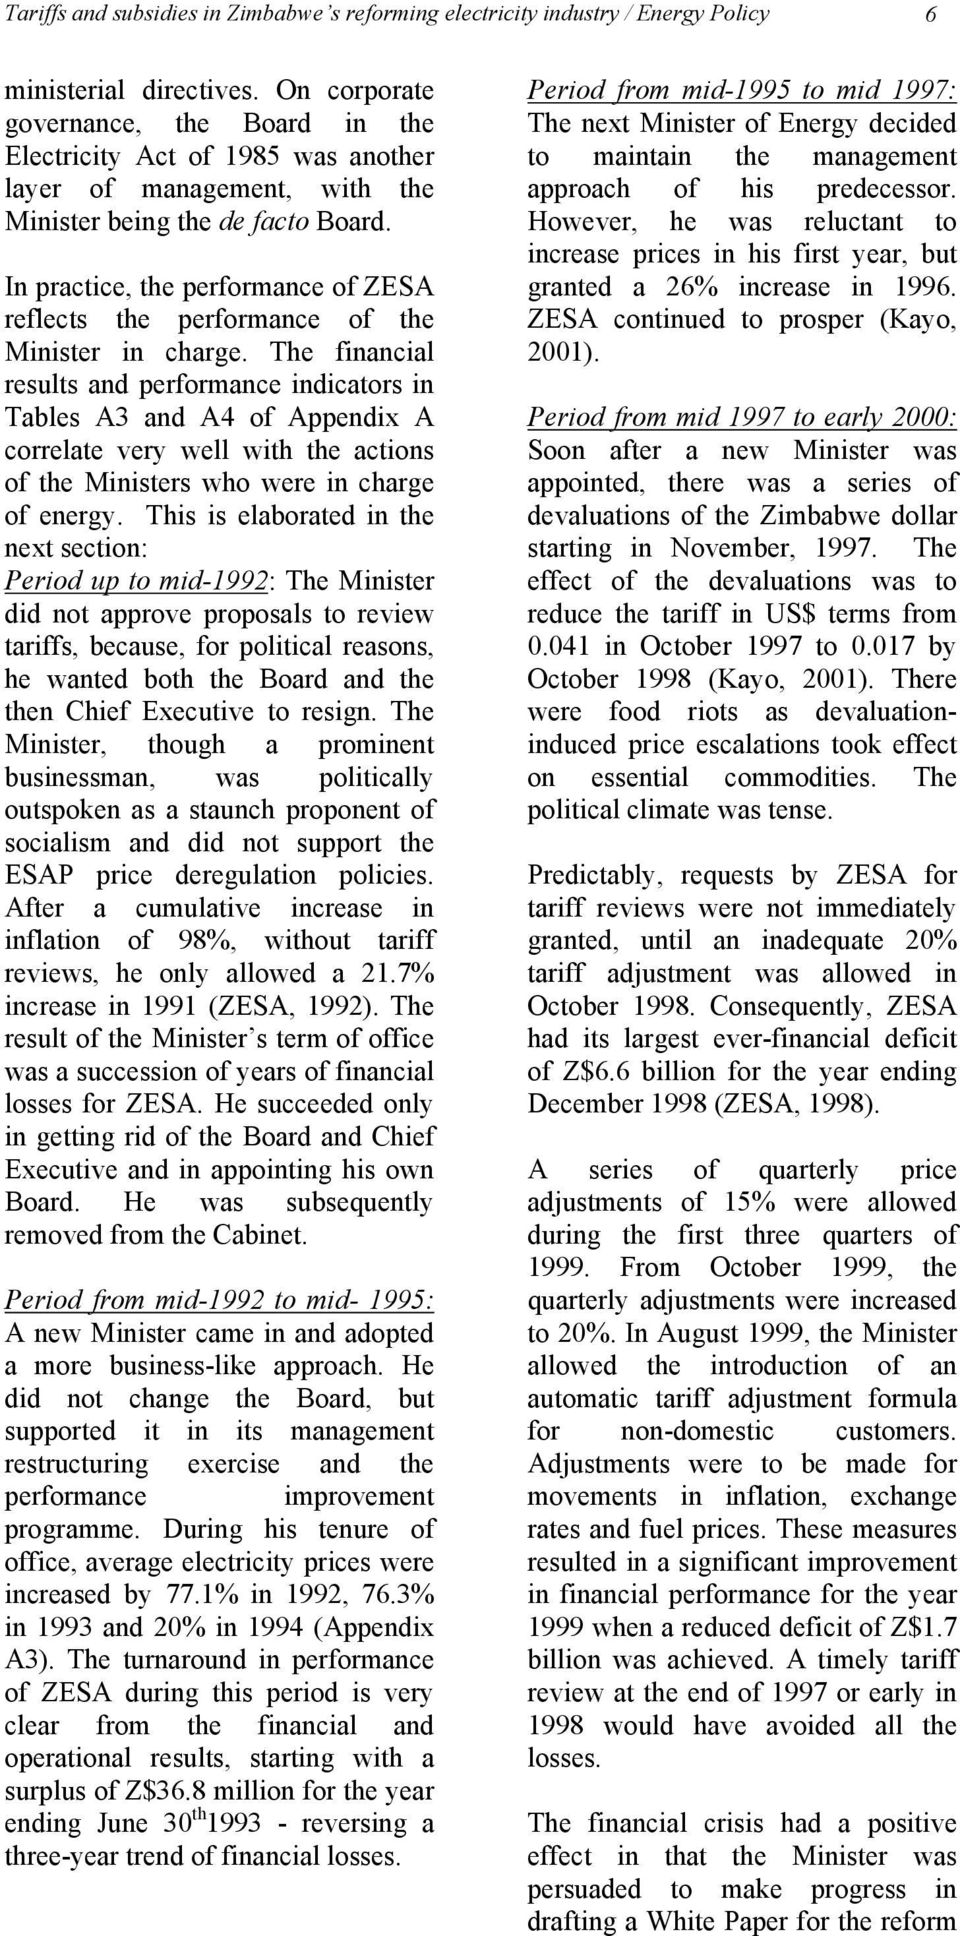 In practice, the performance of ZESA reflects the performance of the Minister in charge.